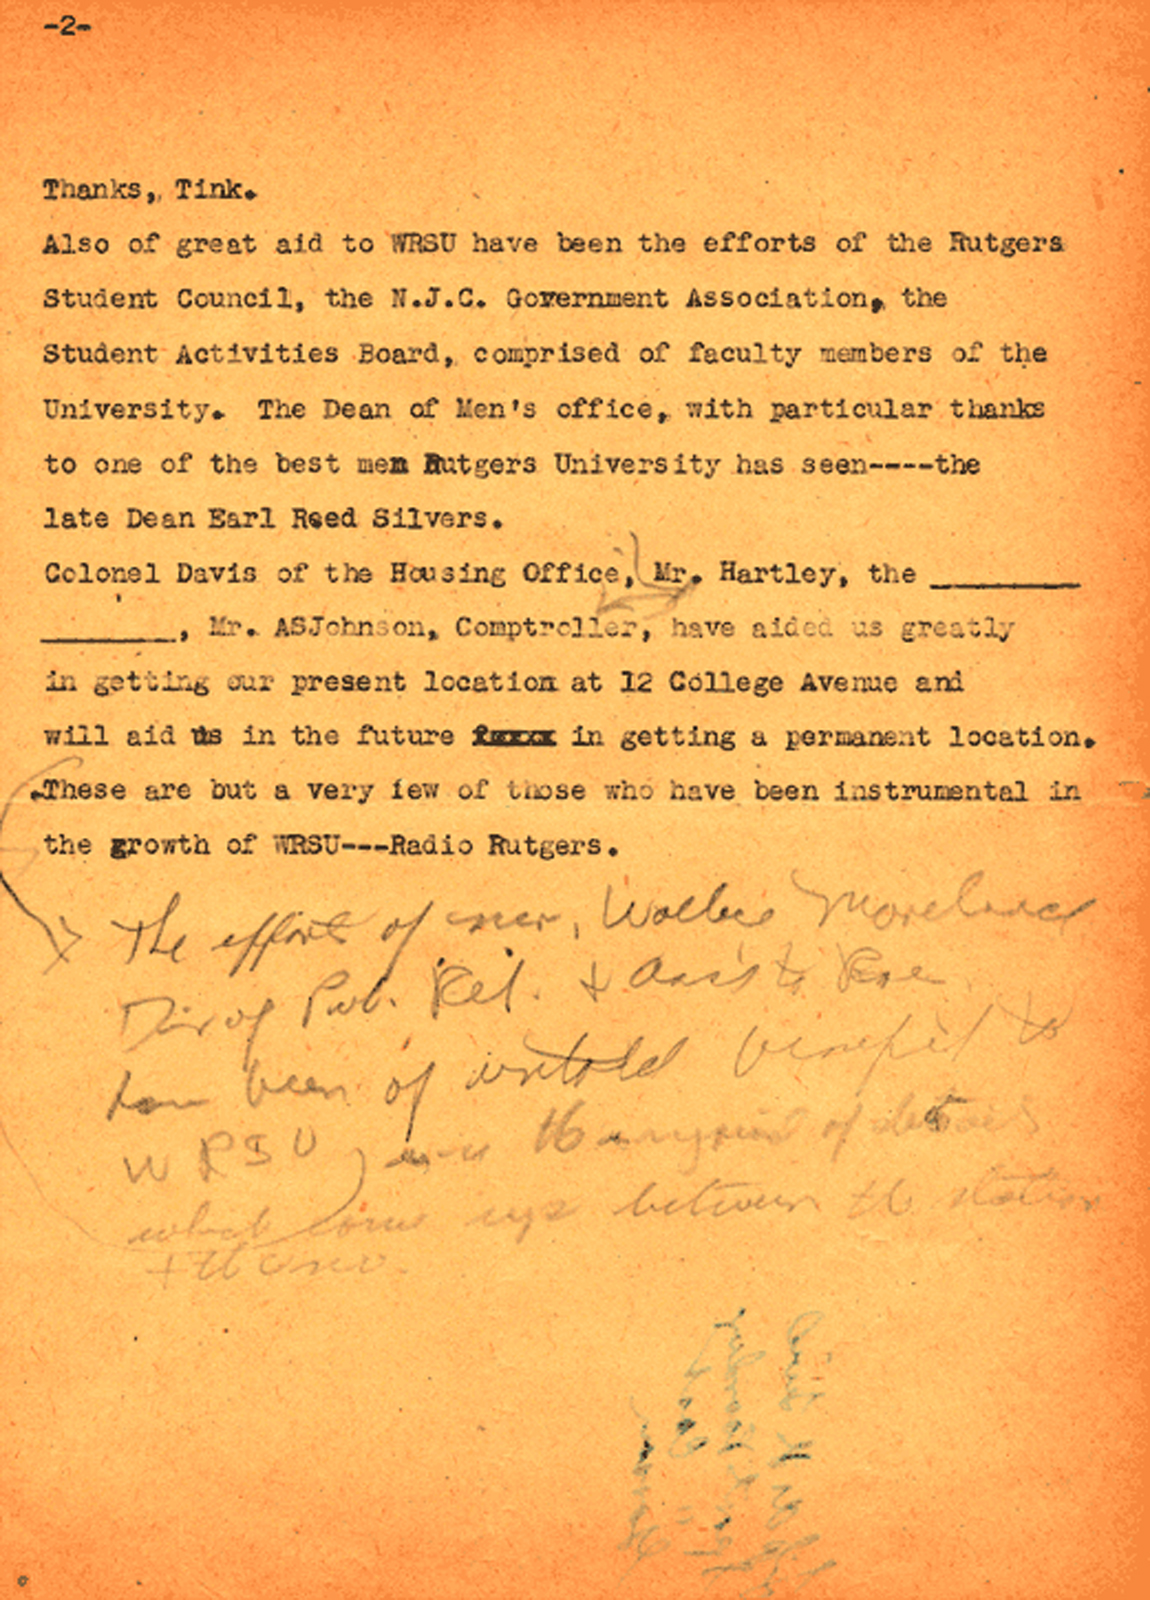 Charles Brookwell Original Script from April 26, 1948 - Page 2